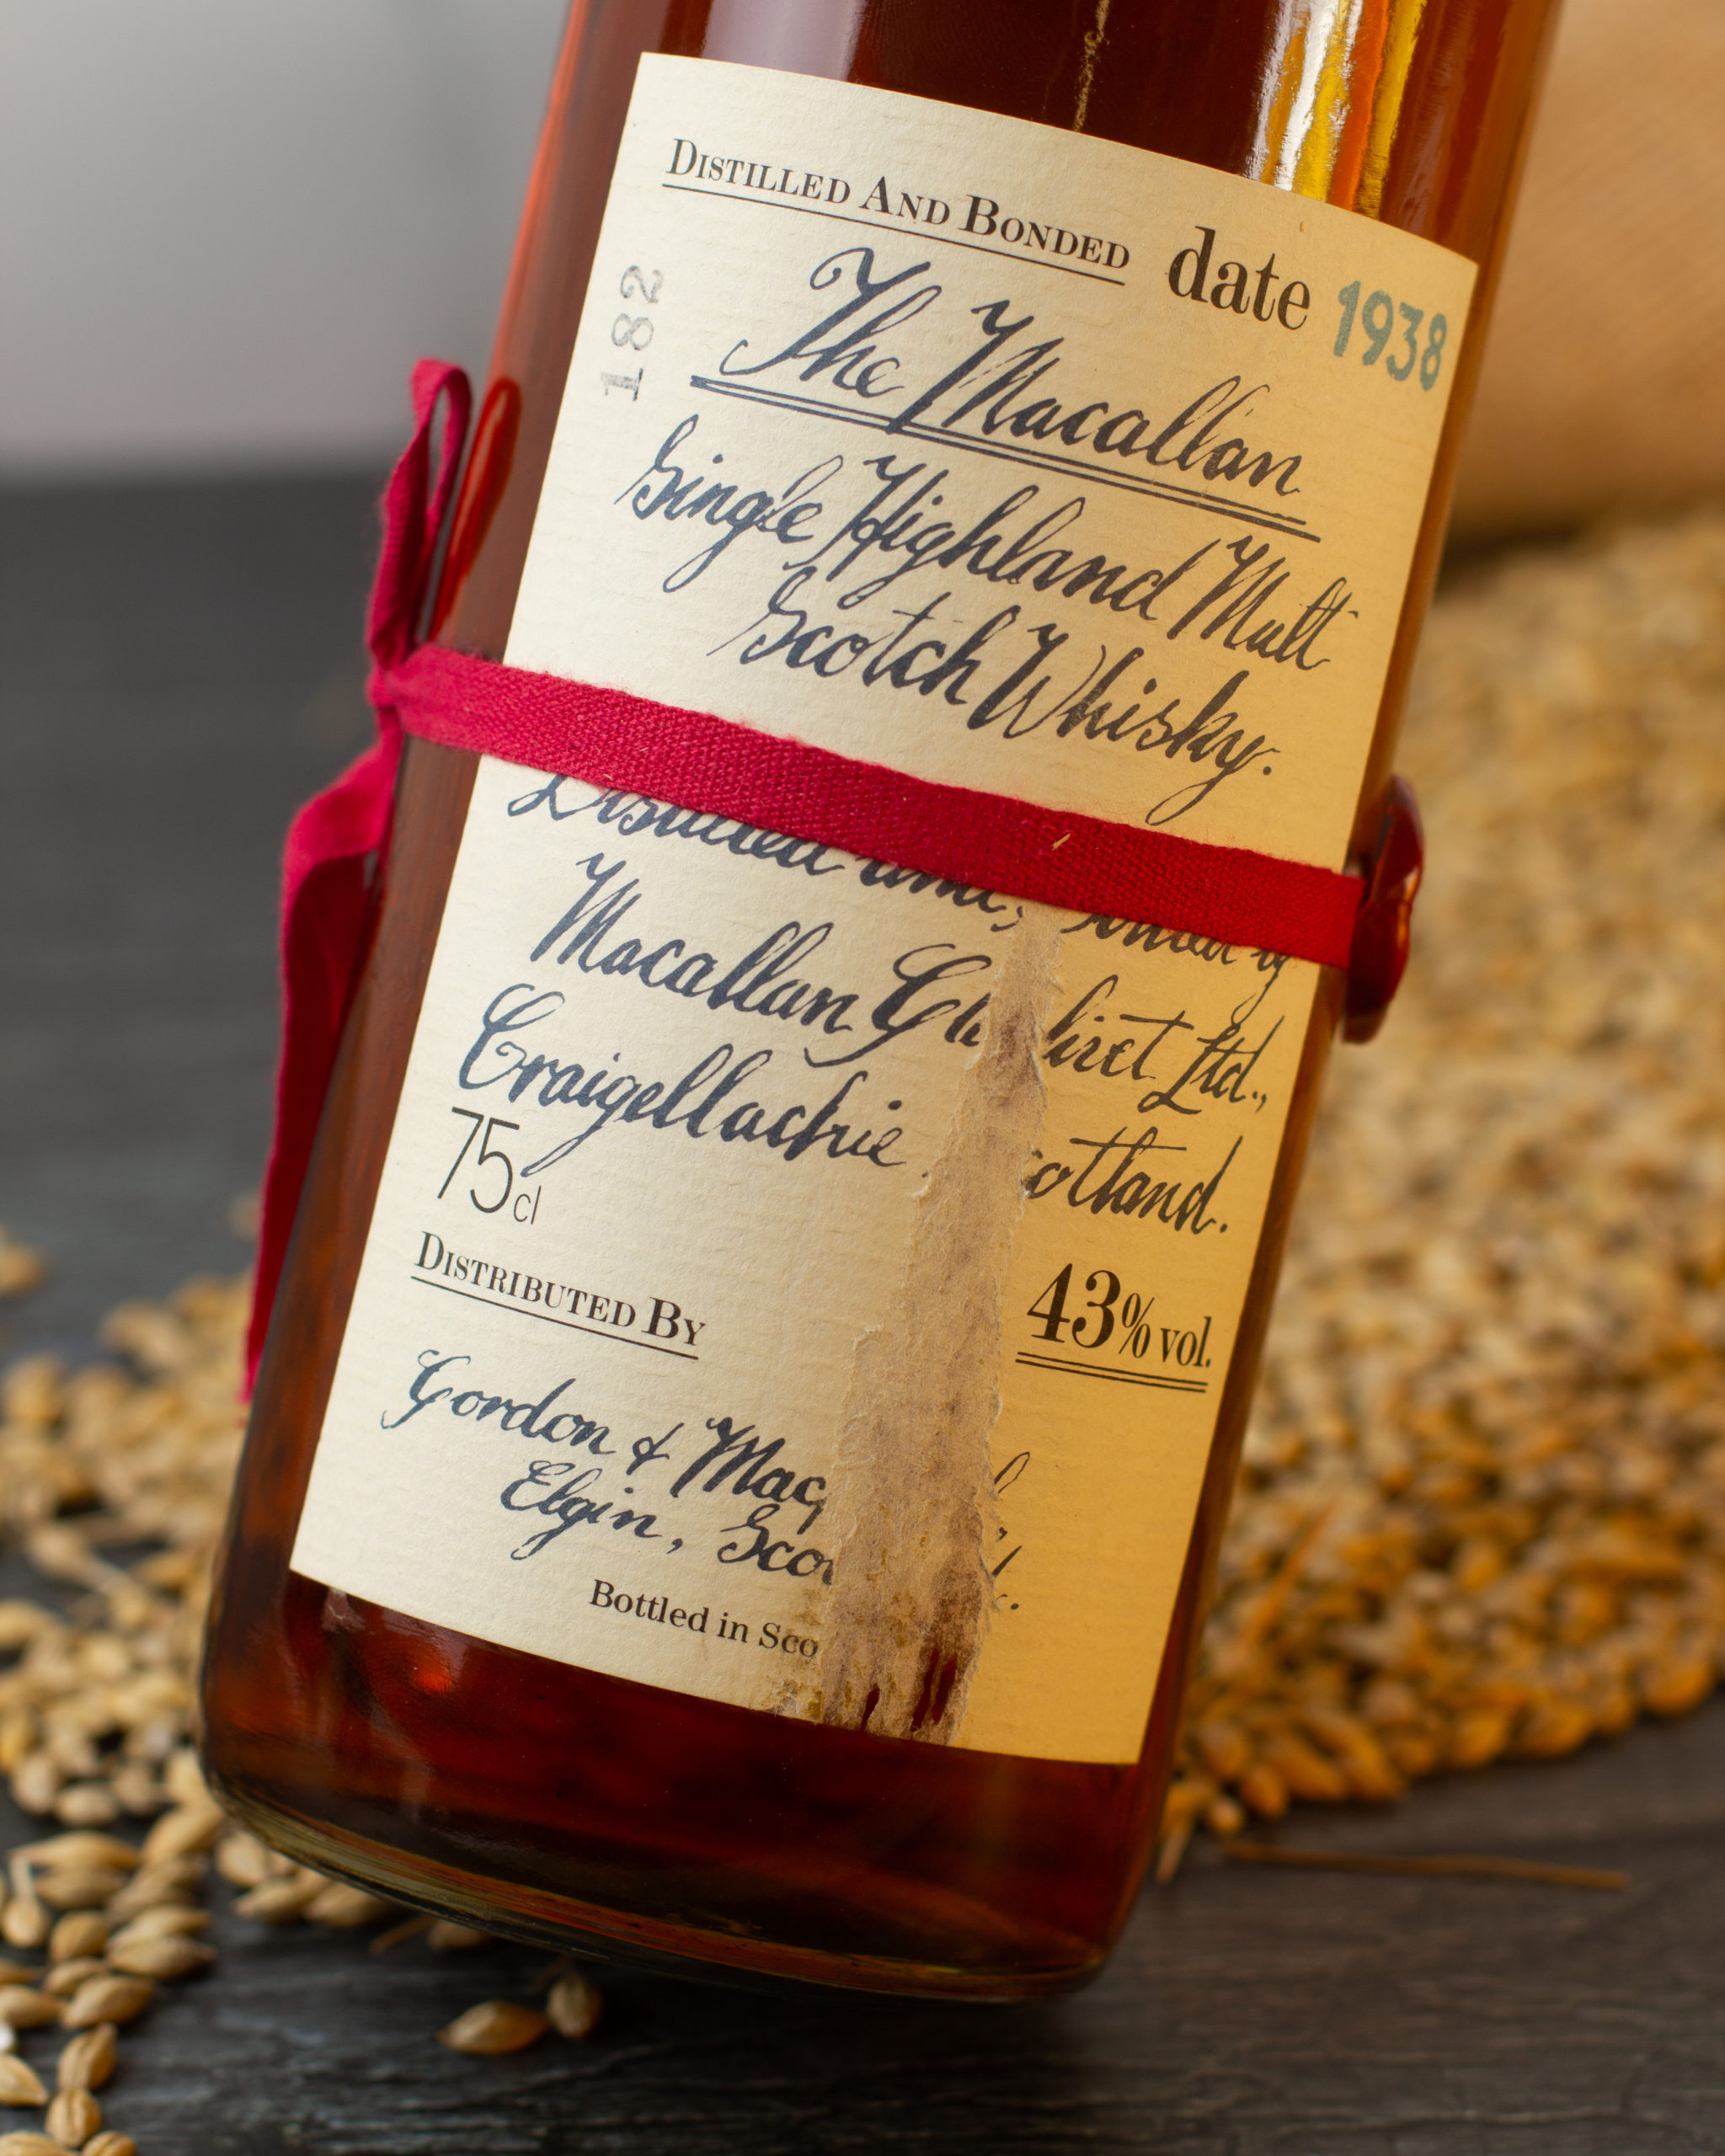 Macallan 1938 Hand Writted (3)